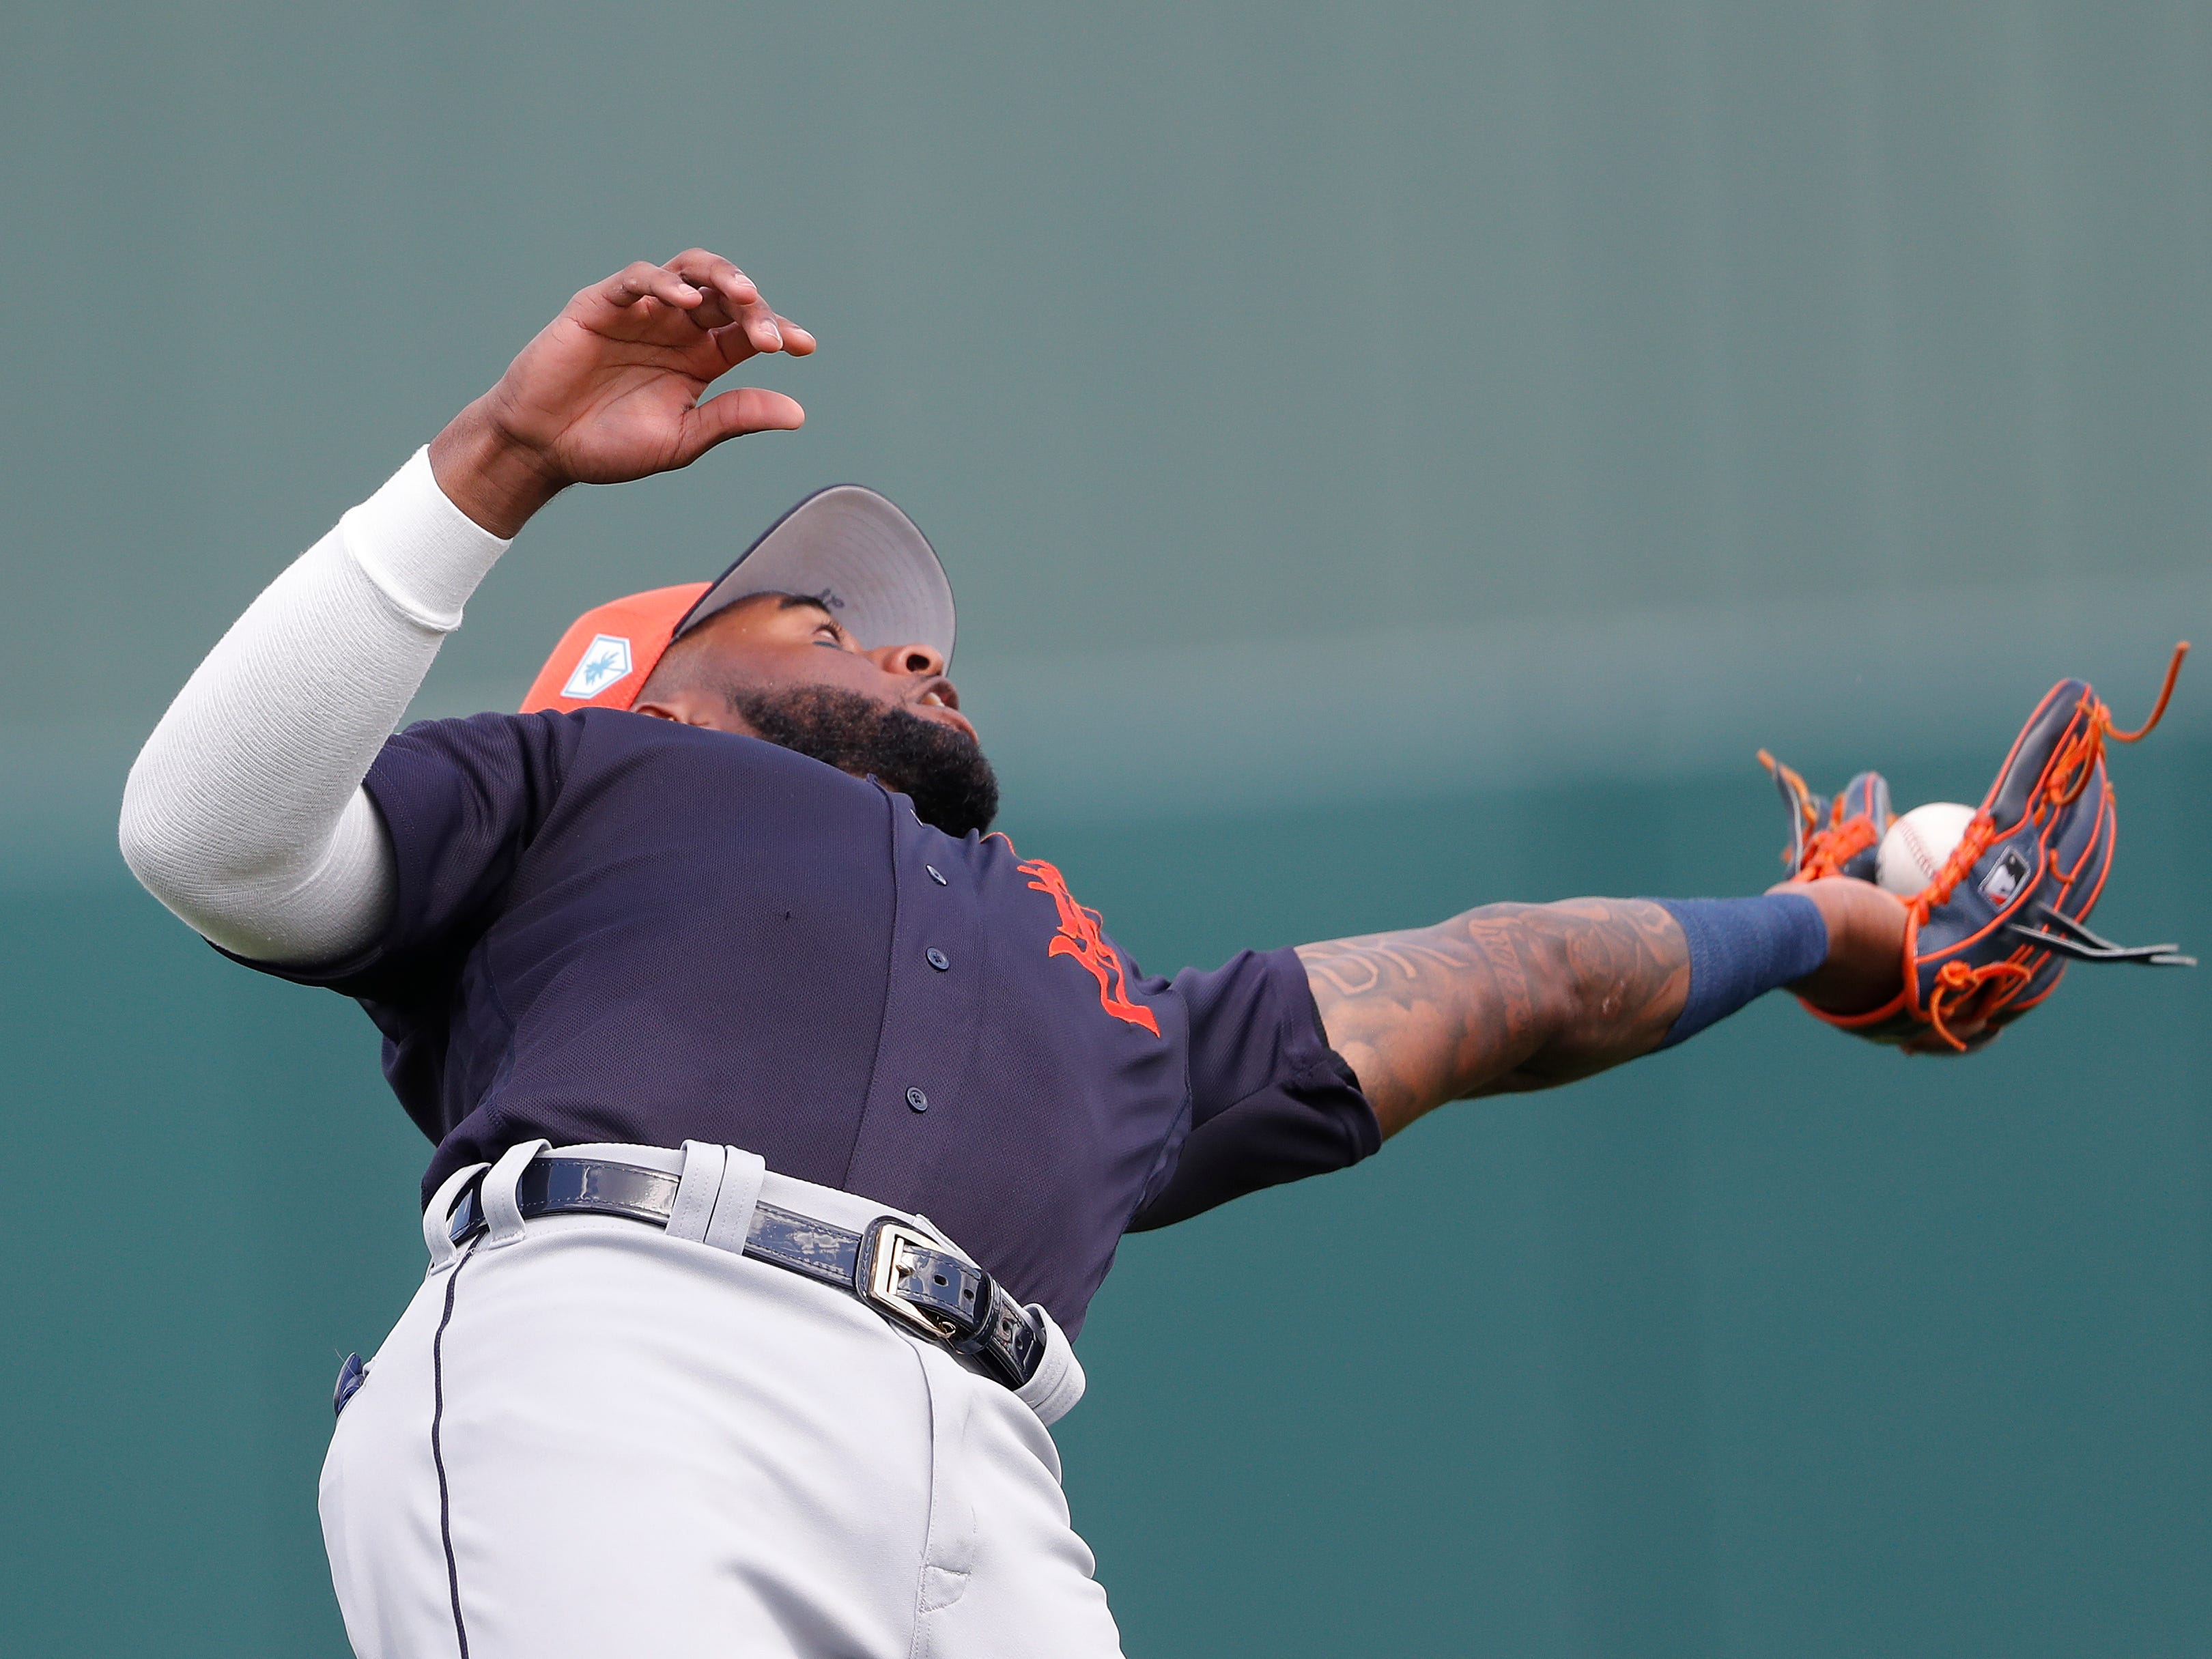 Detroit Tigers shortstop Niko Goodrum (28) catches pop up from Minnesota Twins Mitch Garver in the fourth inning of a spring training baseball game Monday, March 11, 2019, in Fort Myers, Fla.